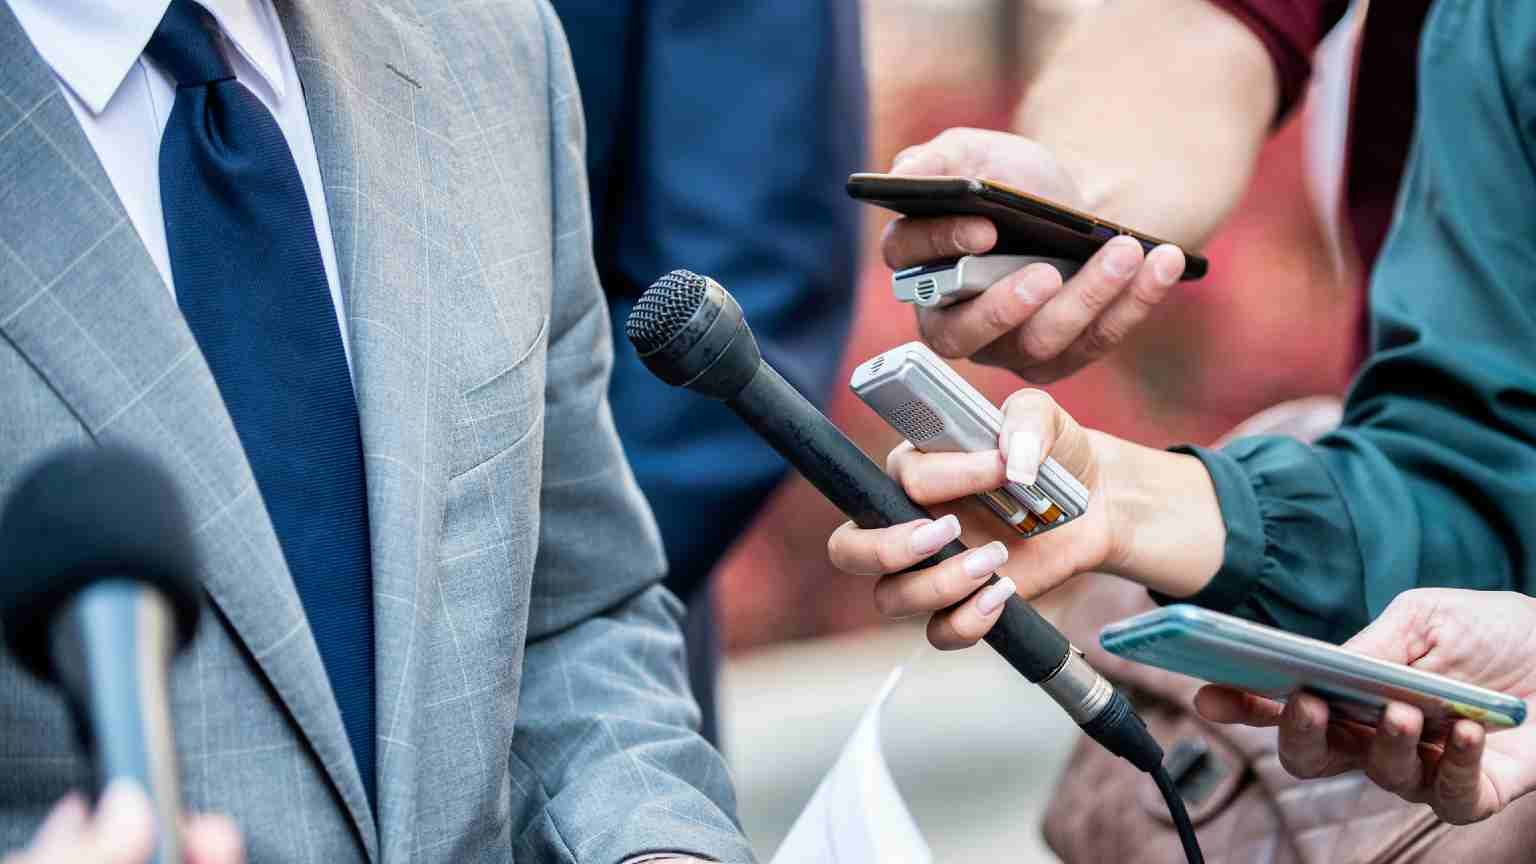 man surrounded by journalists